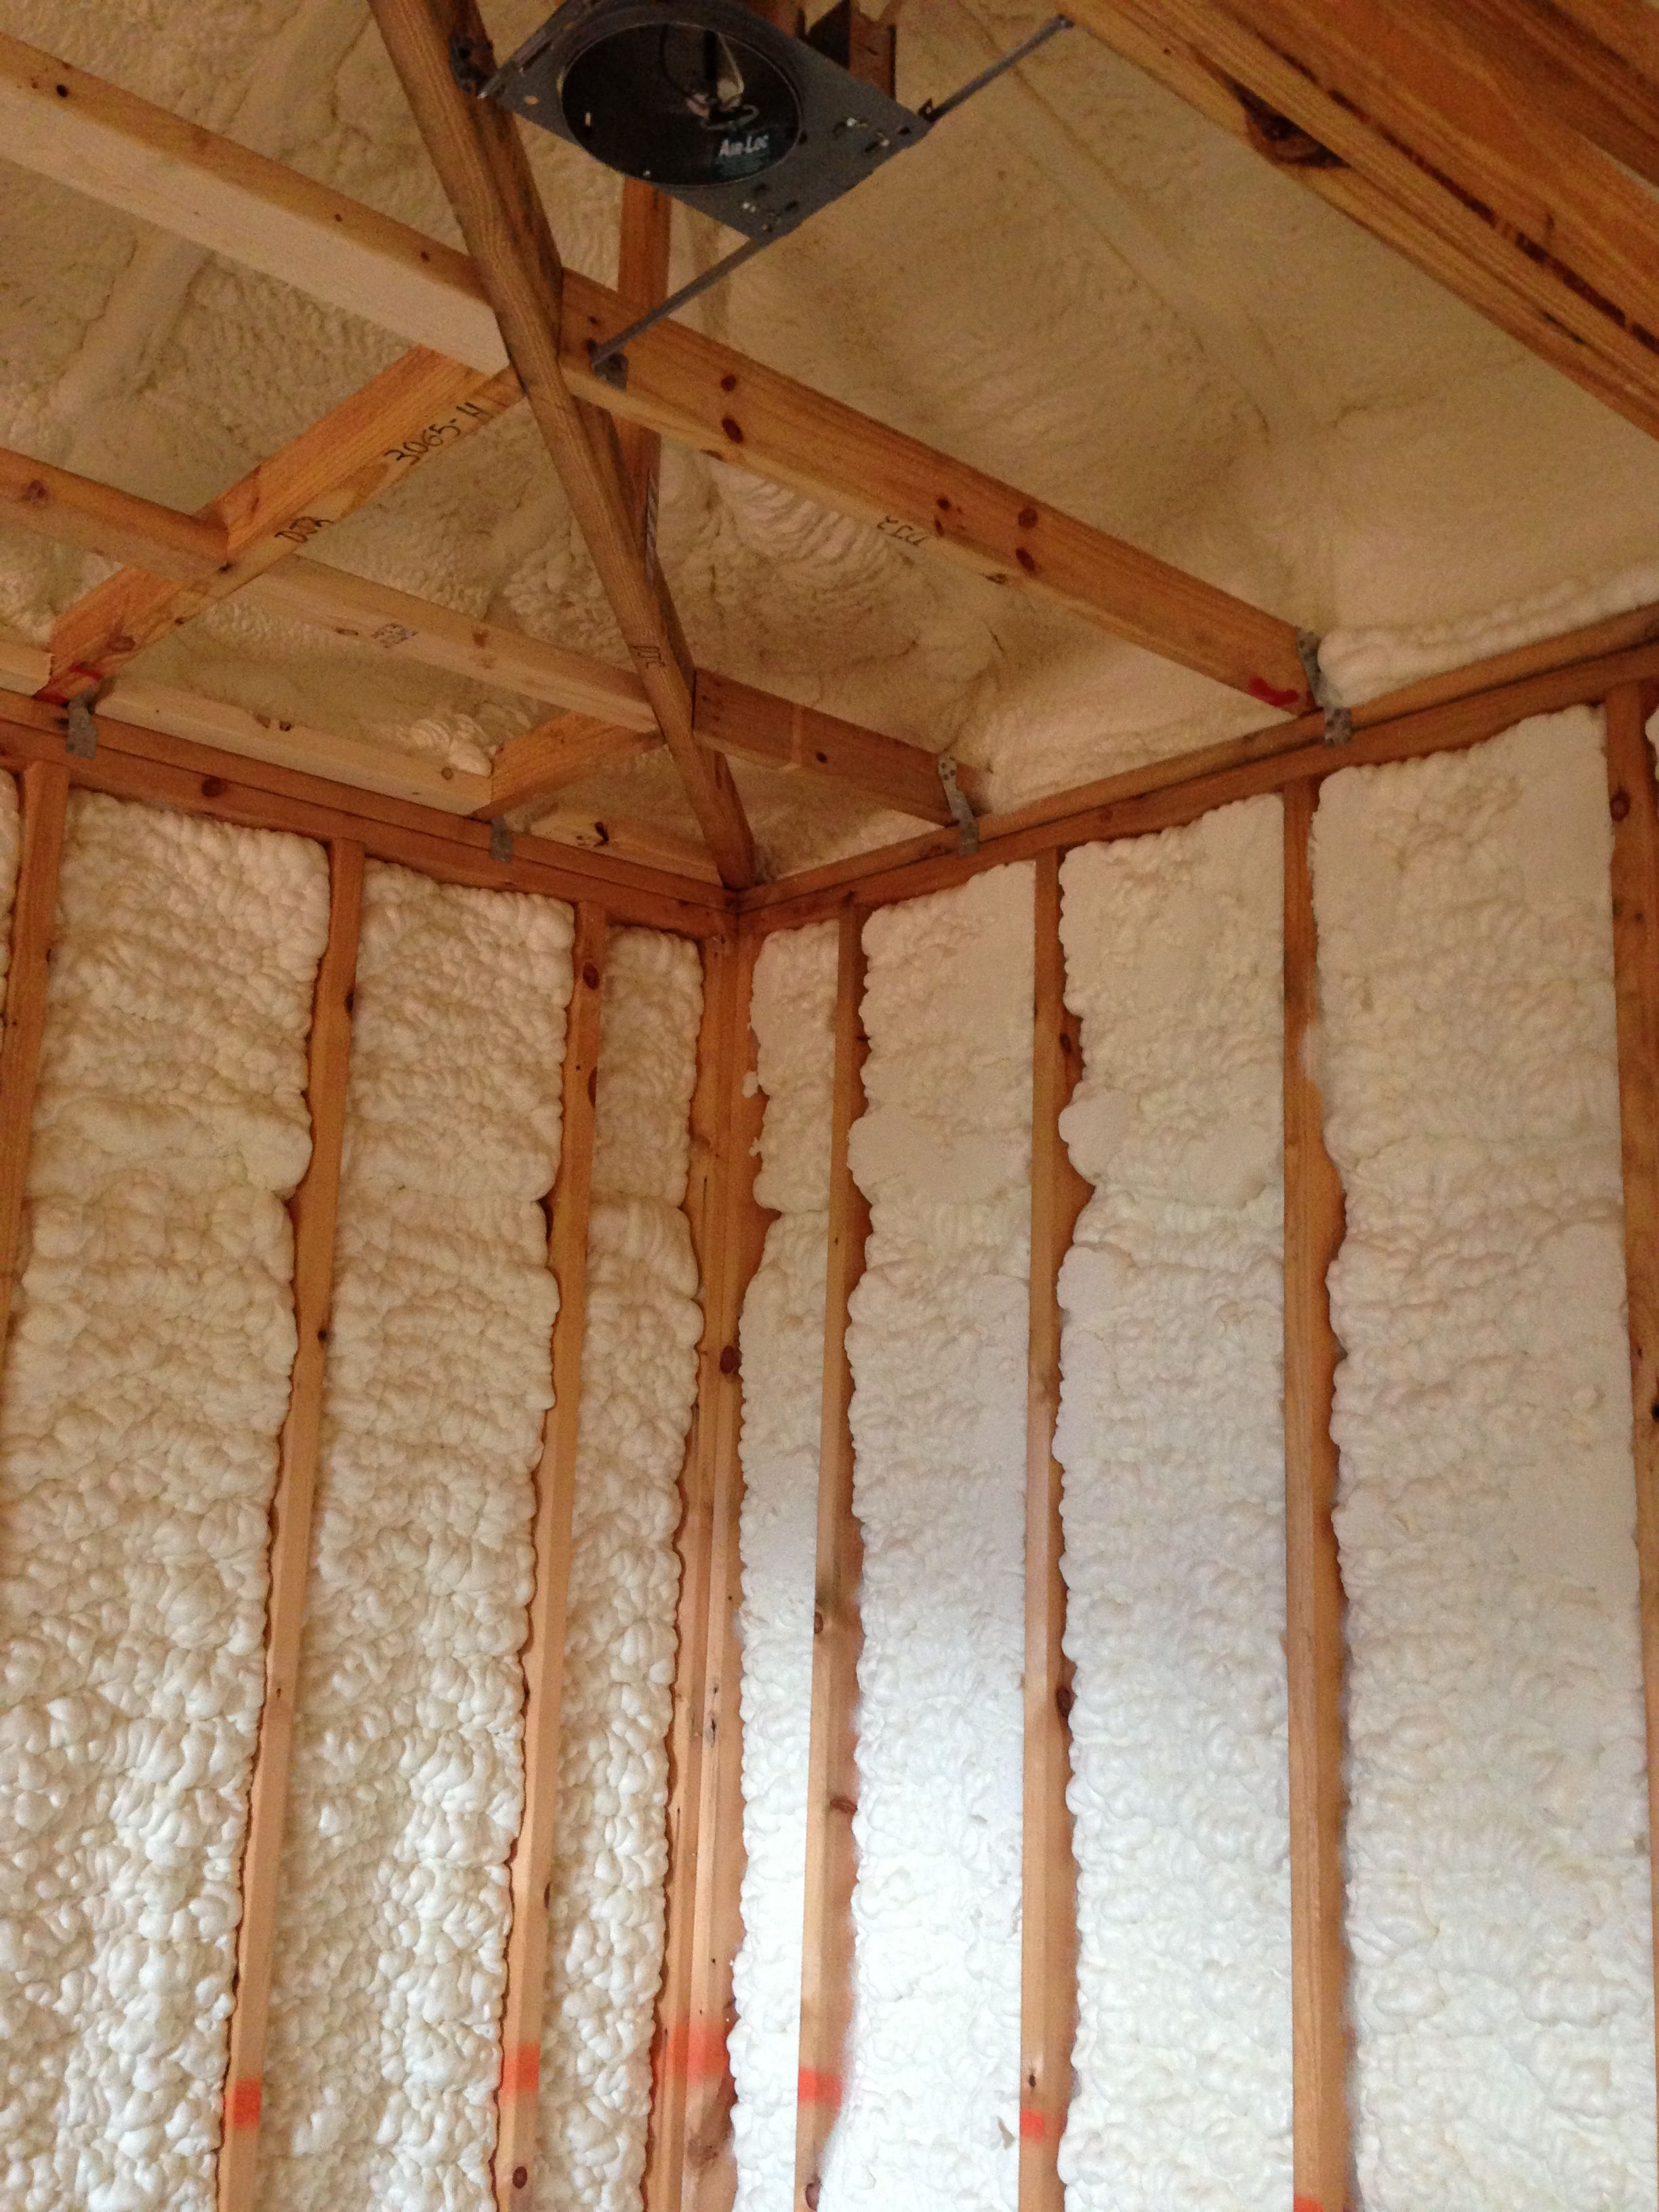 Open Cell Foam On A New Construction In Marietta Georgia Www Southeasterninsulation Com Spray Foam Insulation Insulation Low Cost Housing